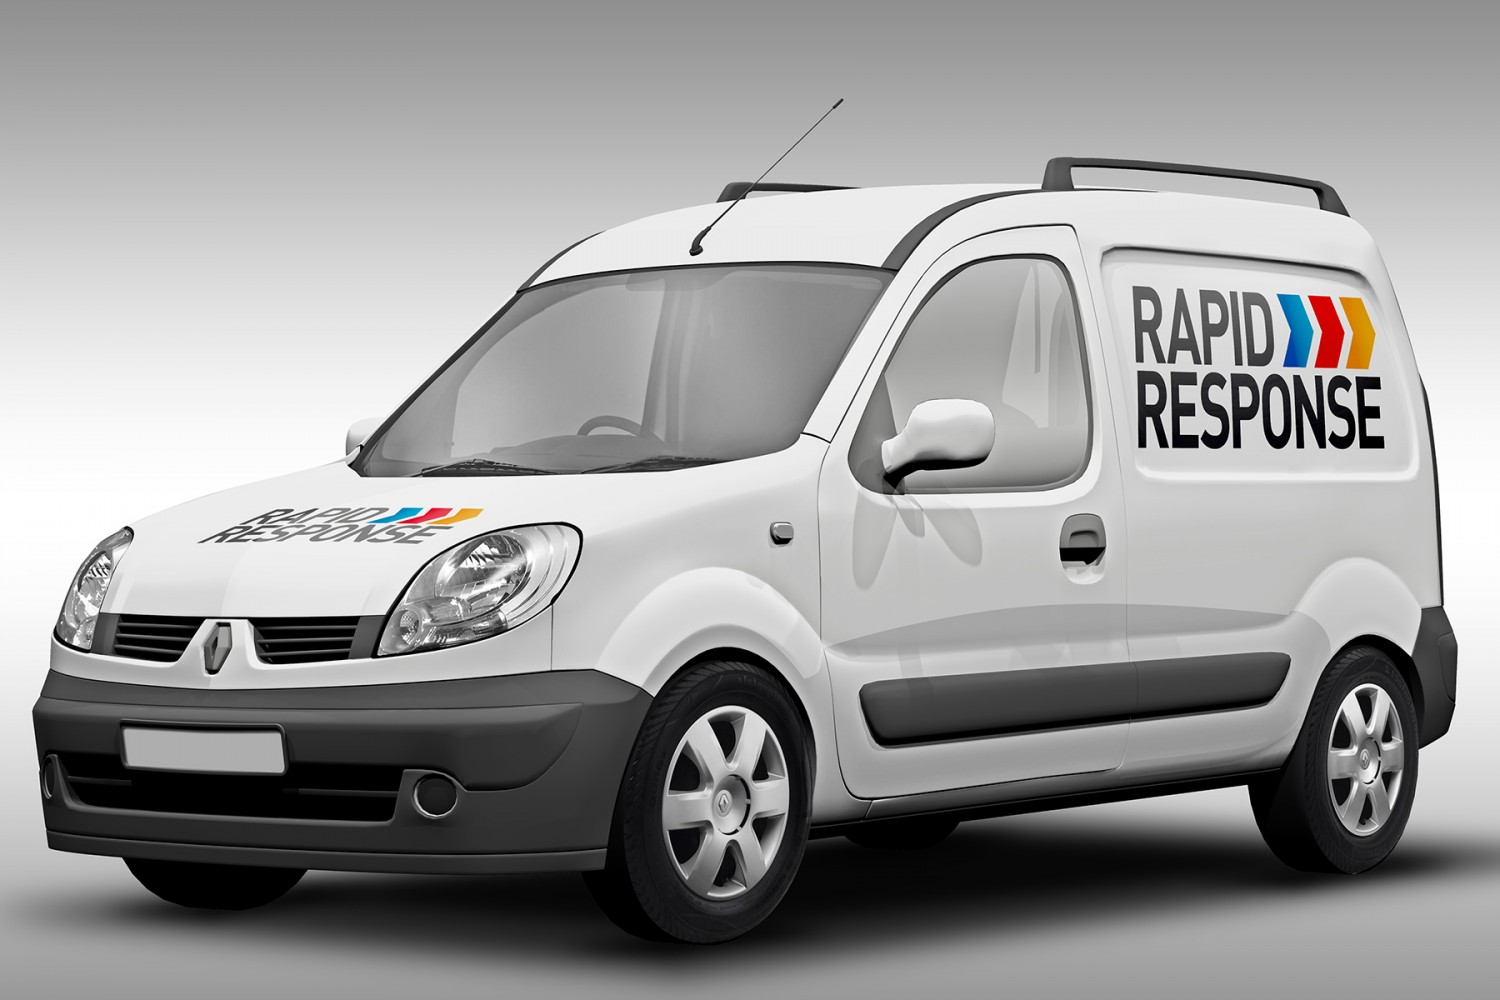 Logo design on side of van for Rapid Response